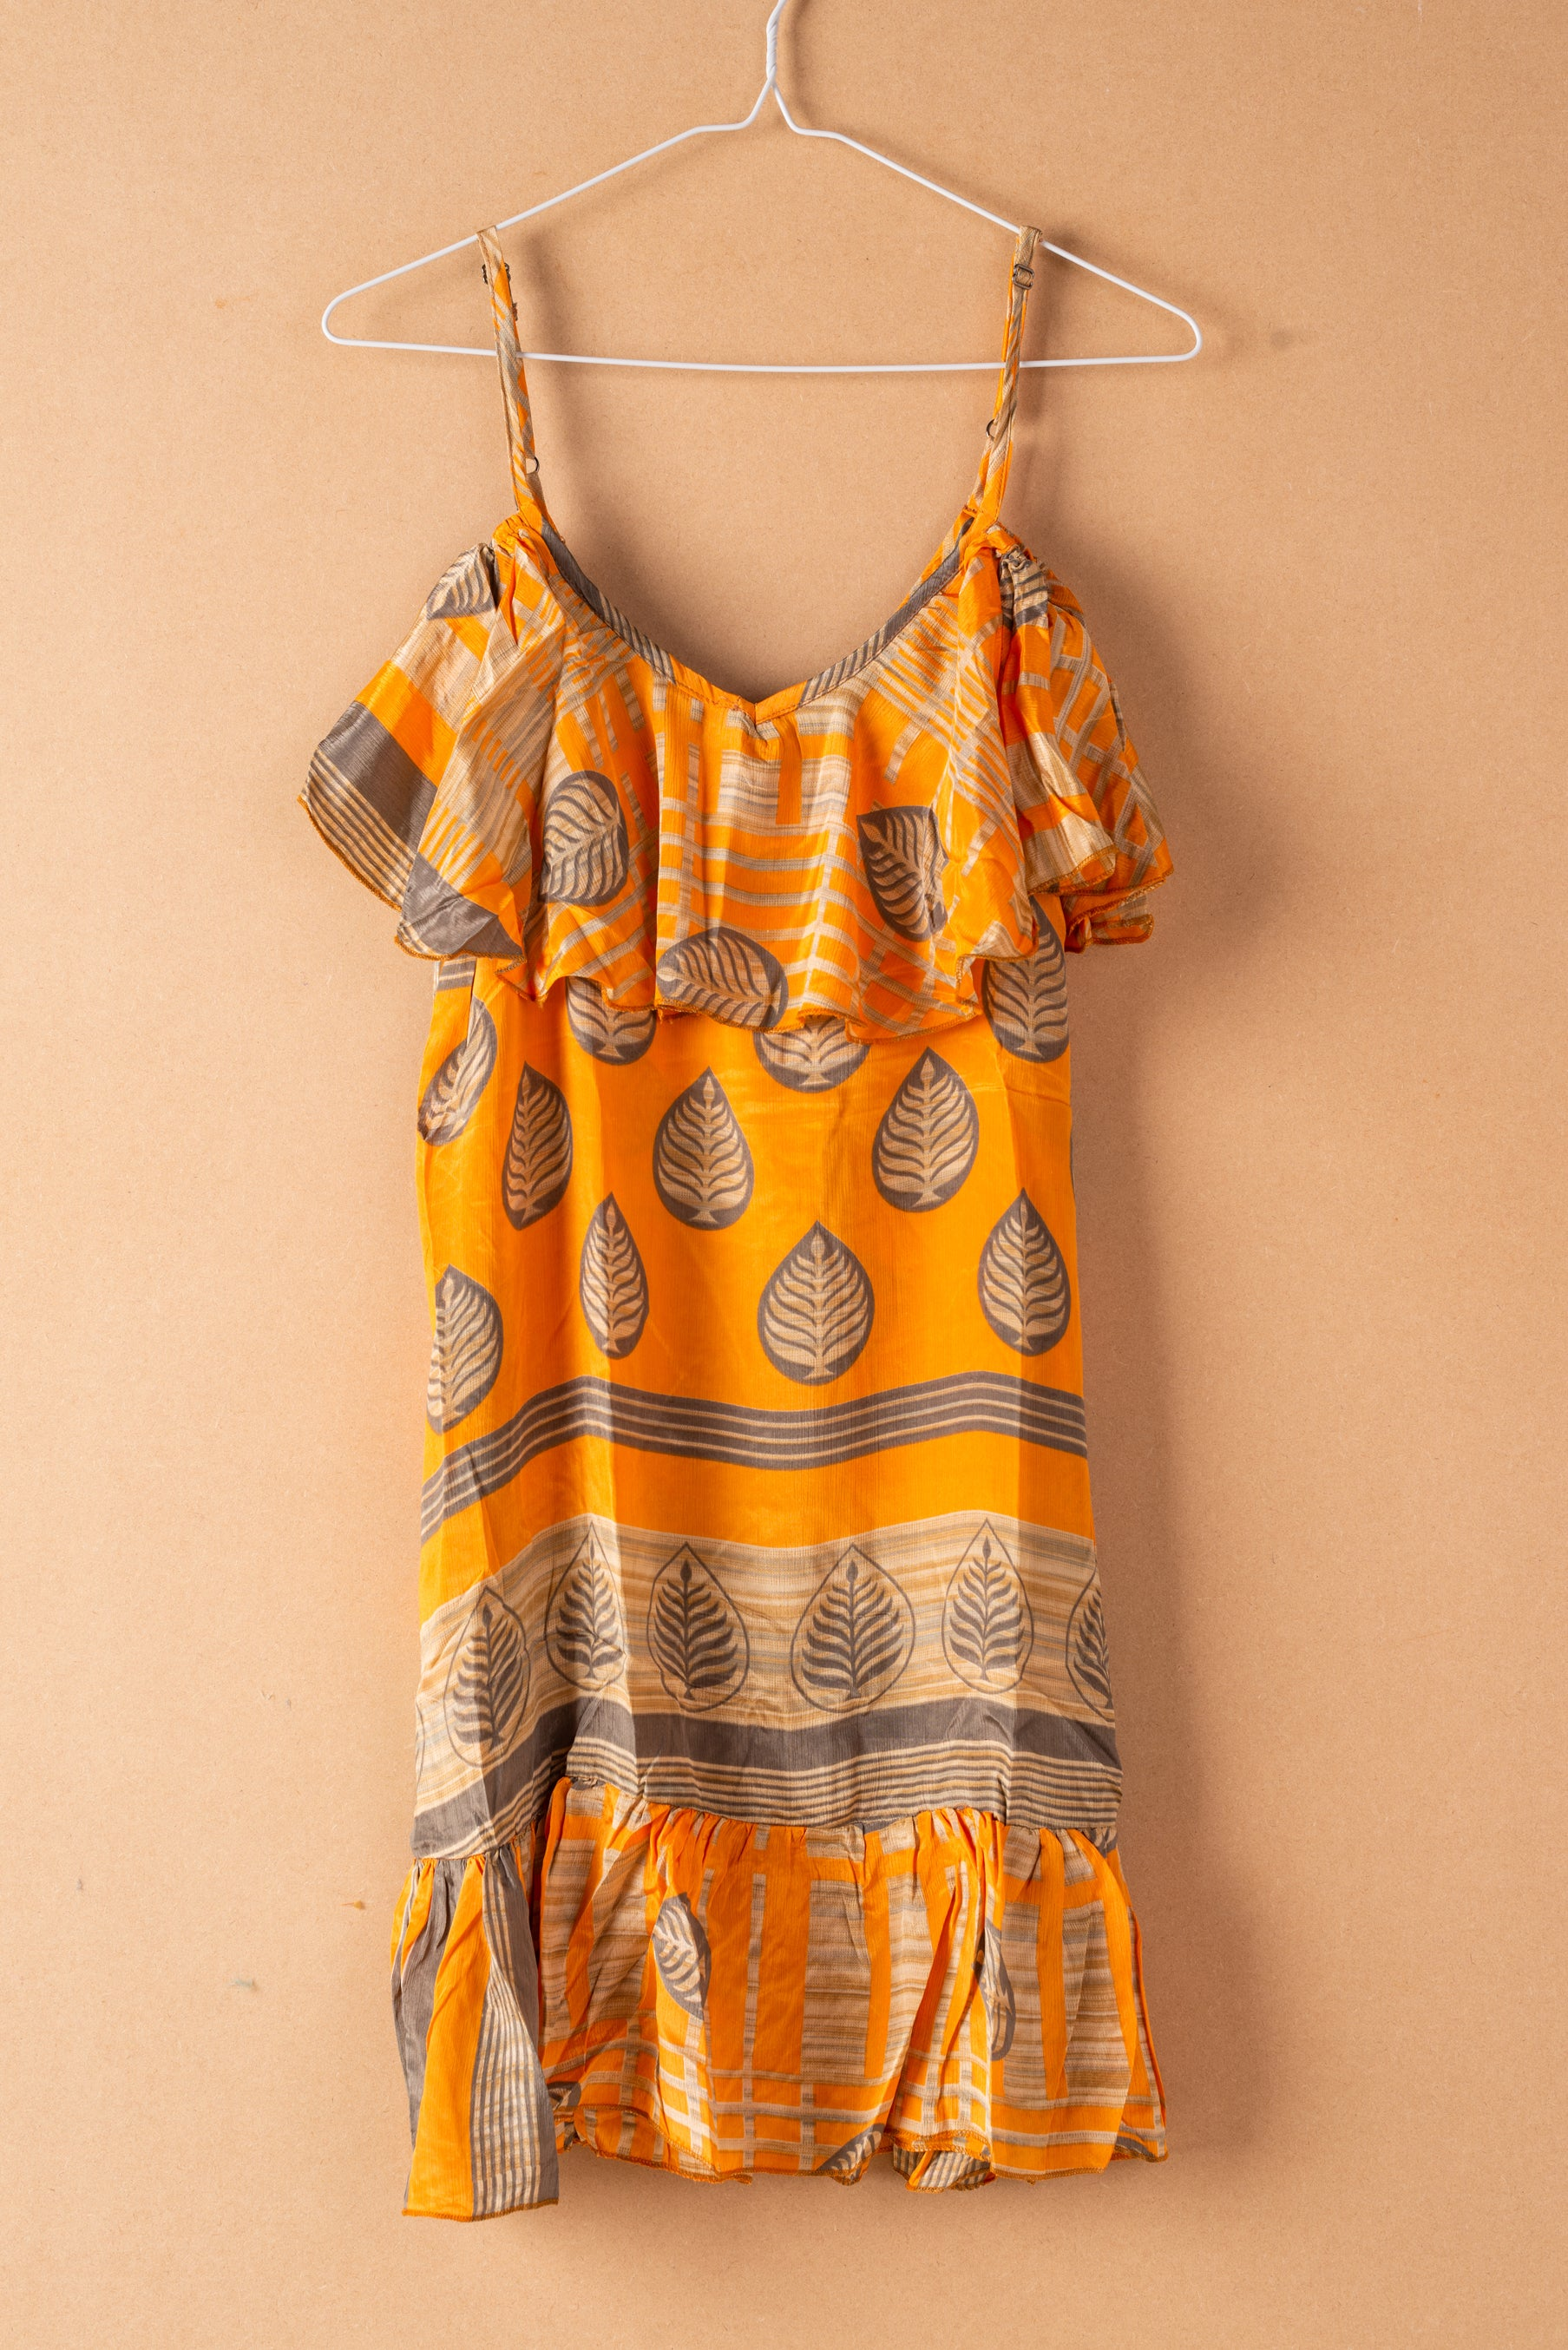 Recycled Silk Short Sleeveless Dress - medium - 02